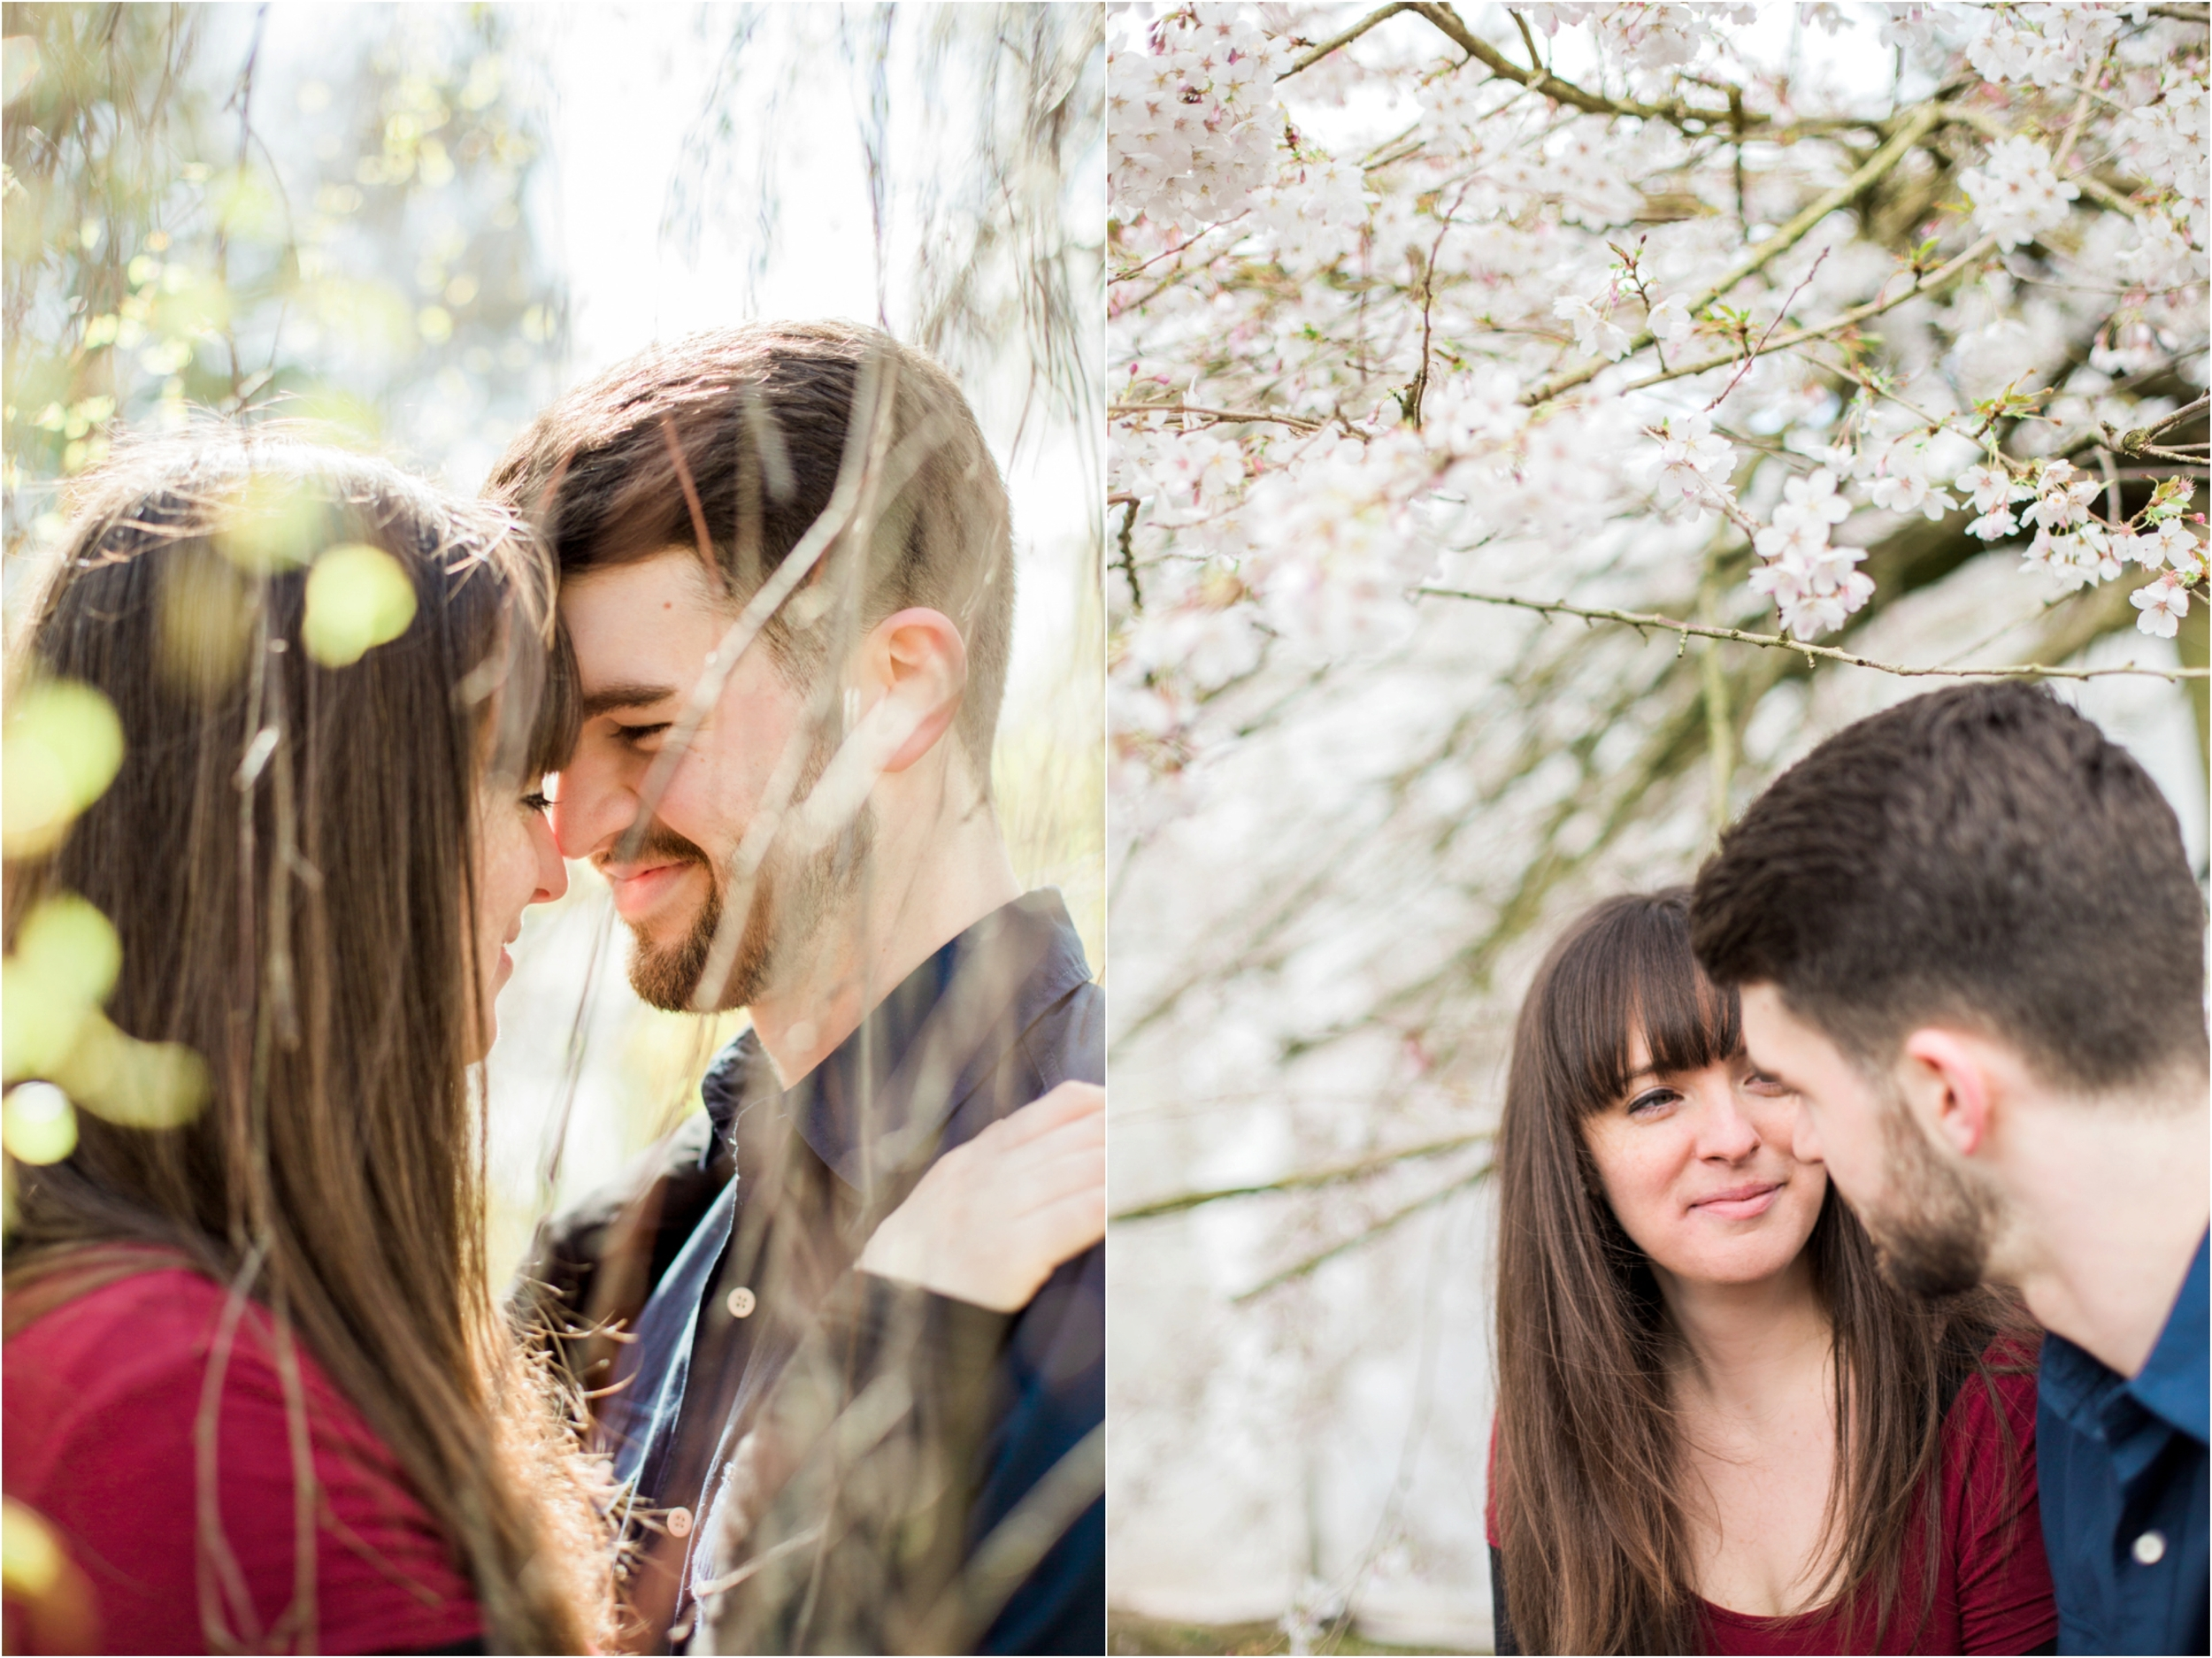 Sophie Evans Photography, Alice & Nathanael Botanical Gardens Engagement Shoot. Warwickshire Wedding Photographer (15).jpg